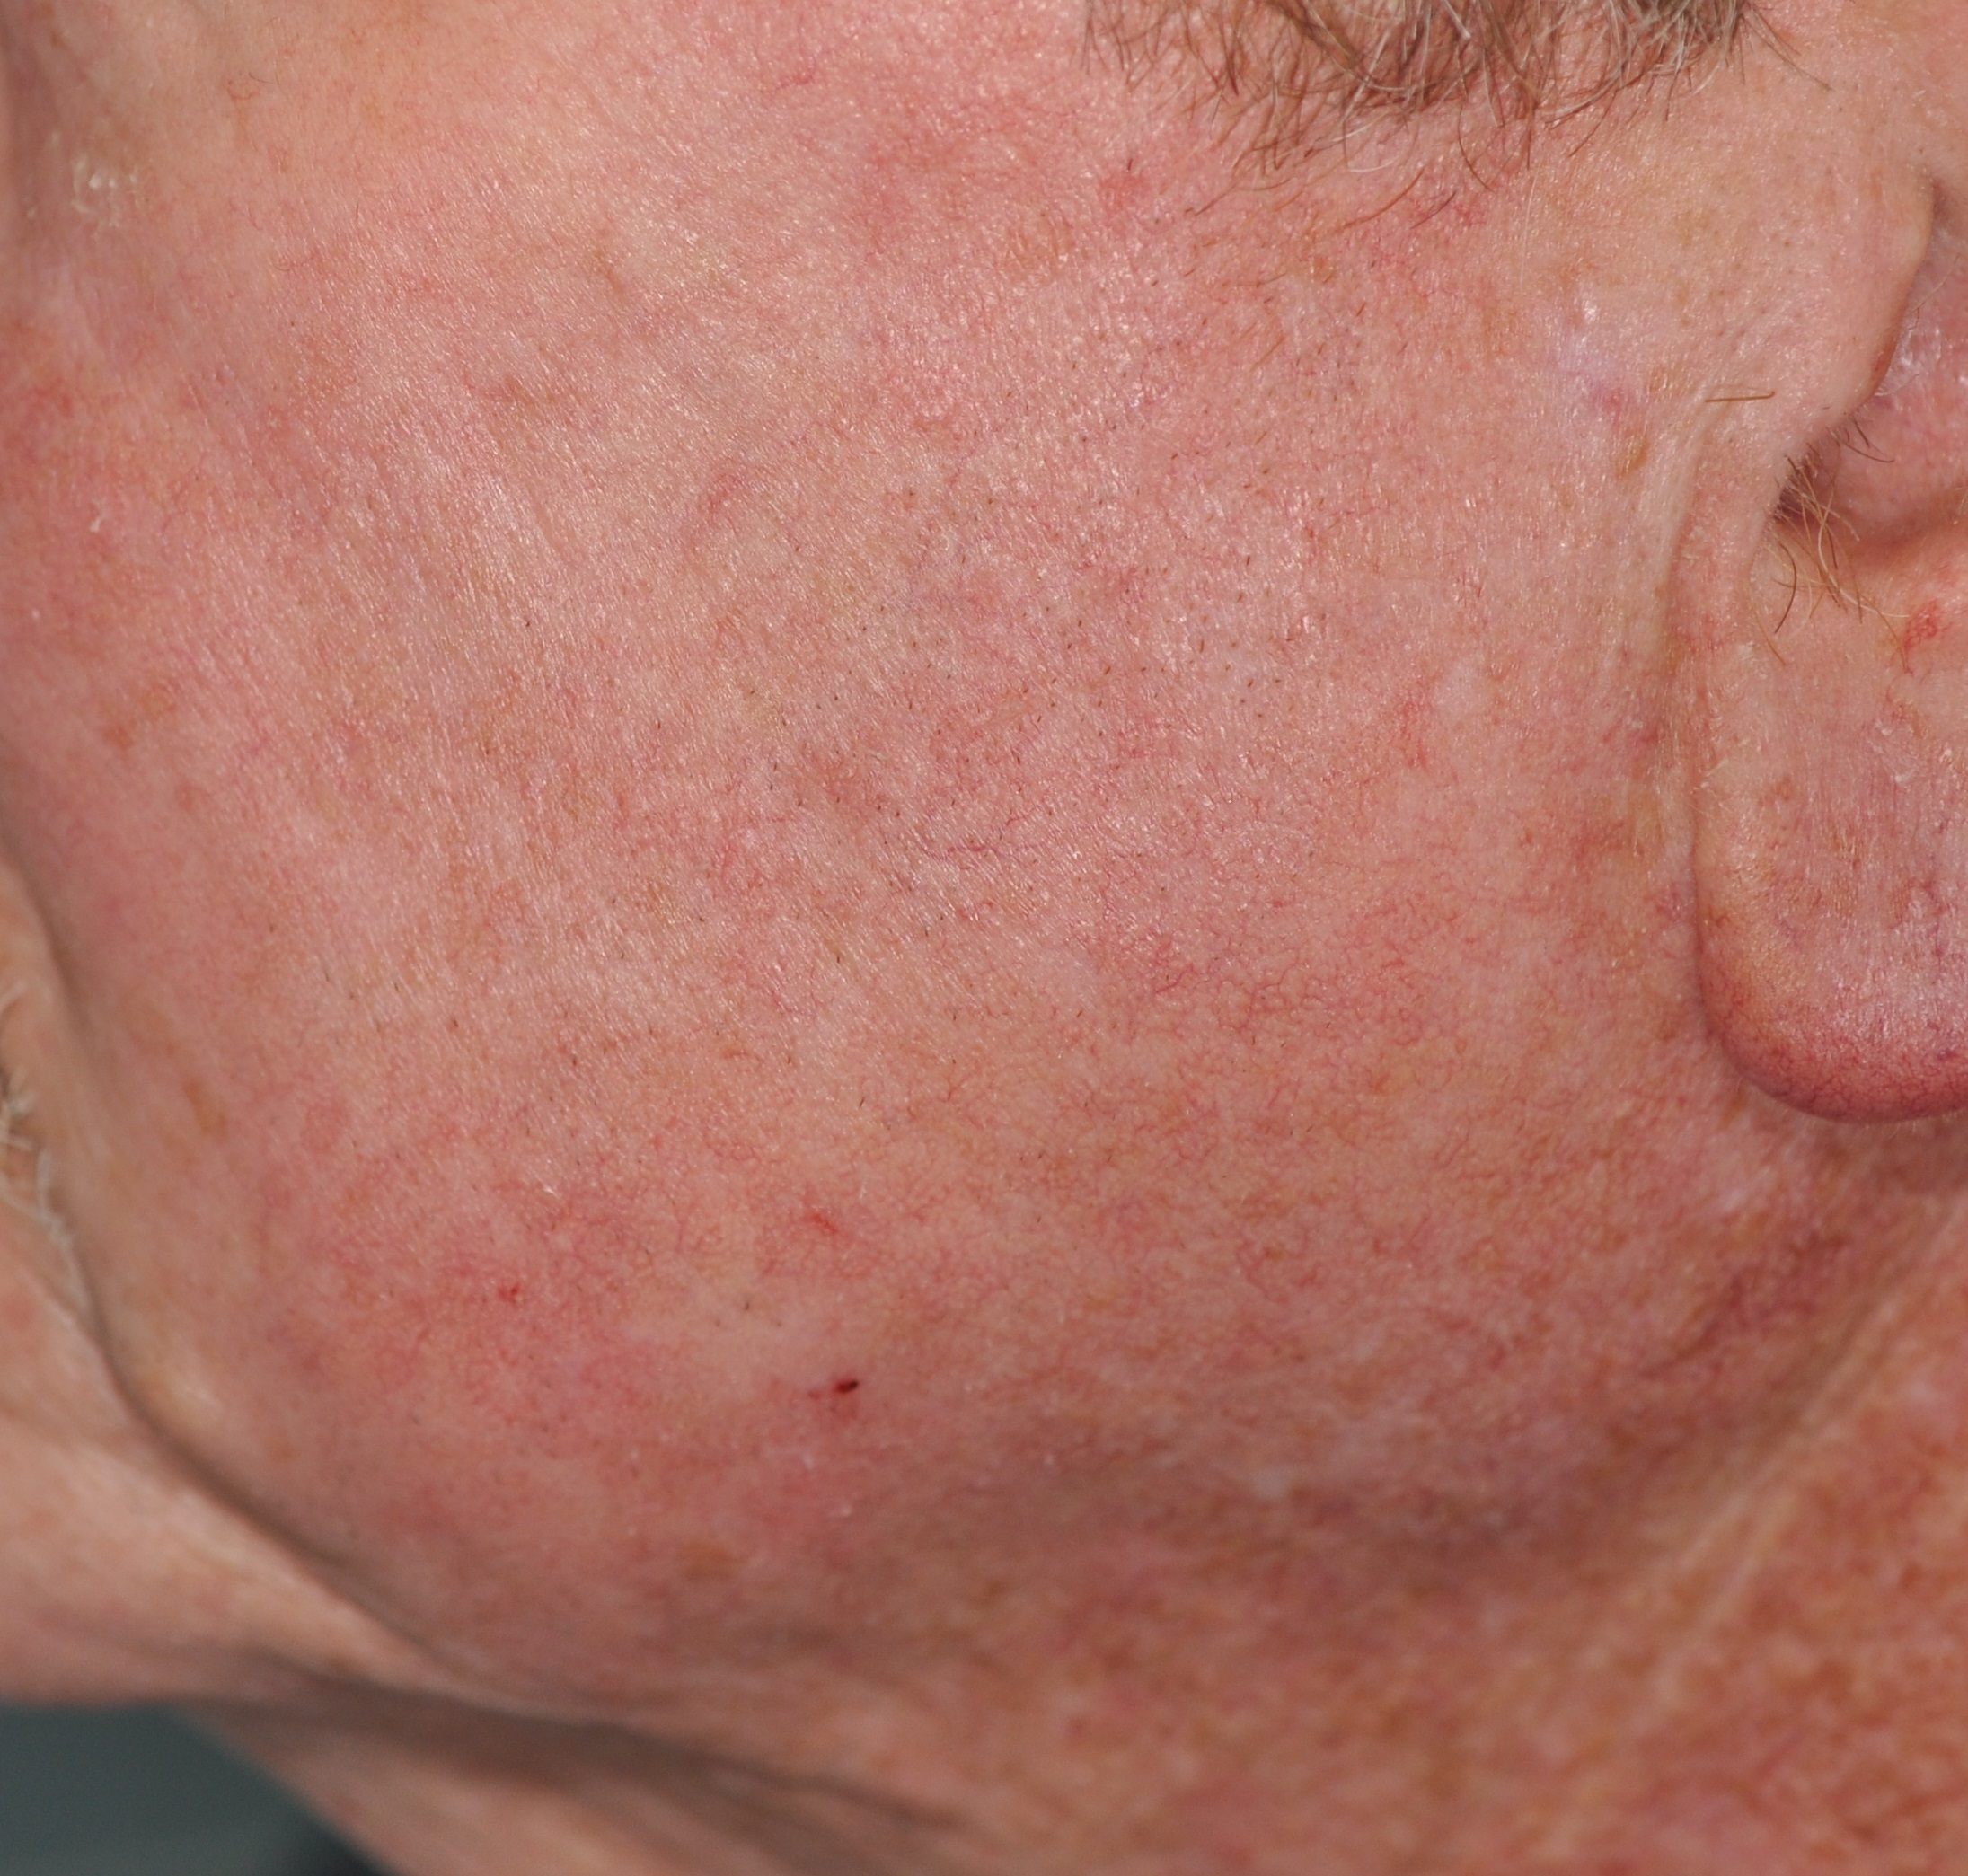 After rosacea treament